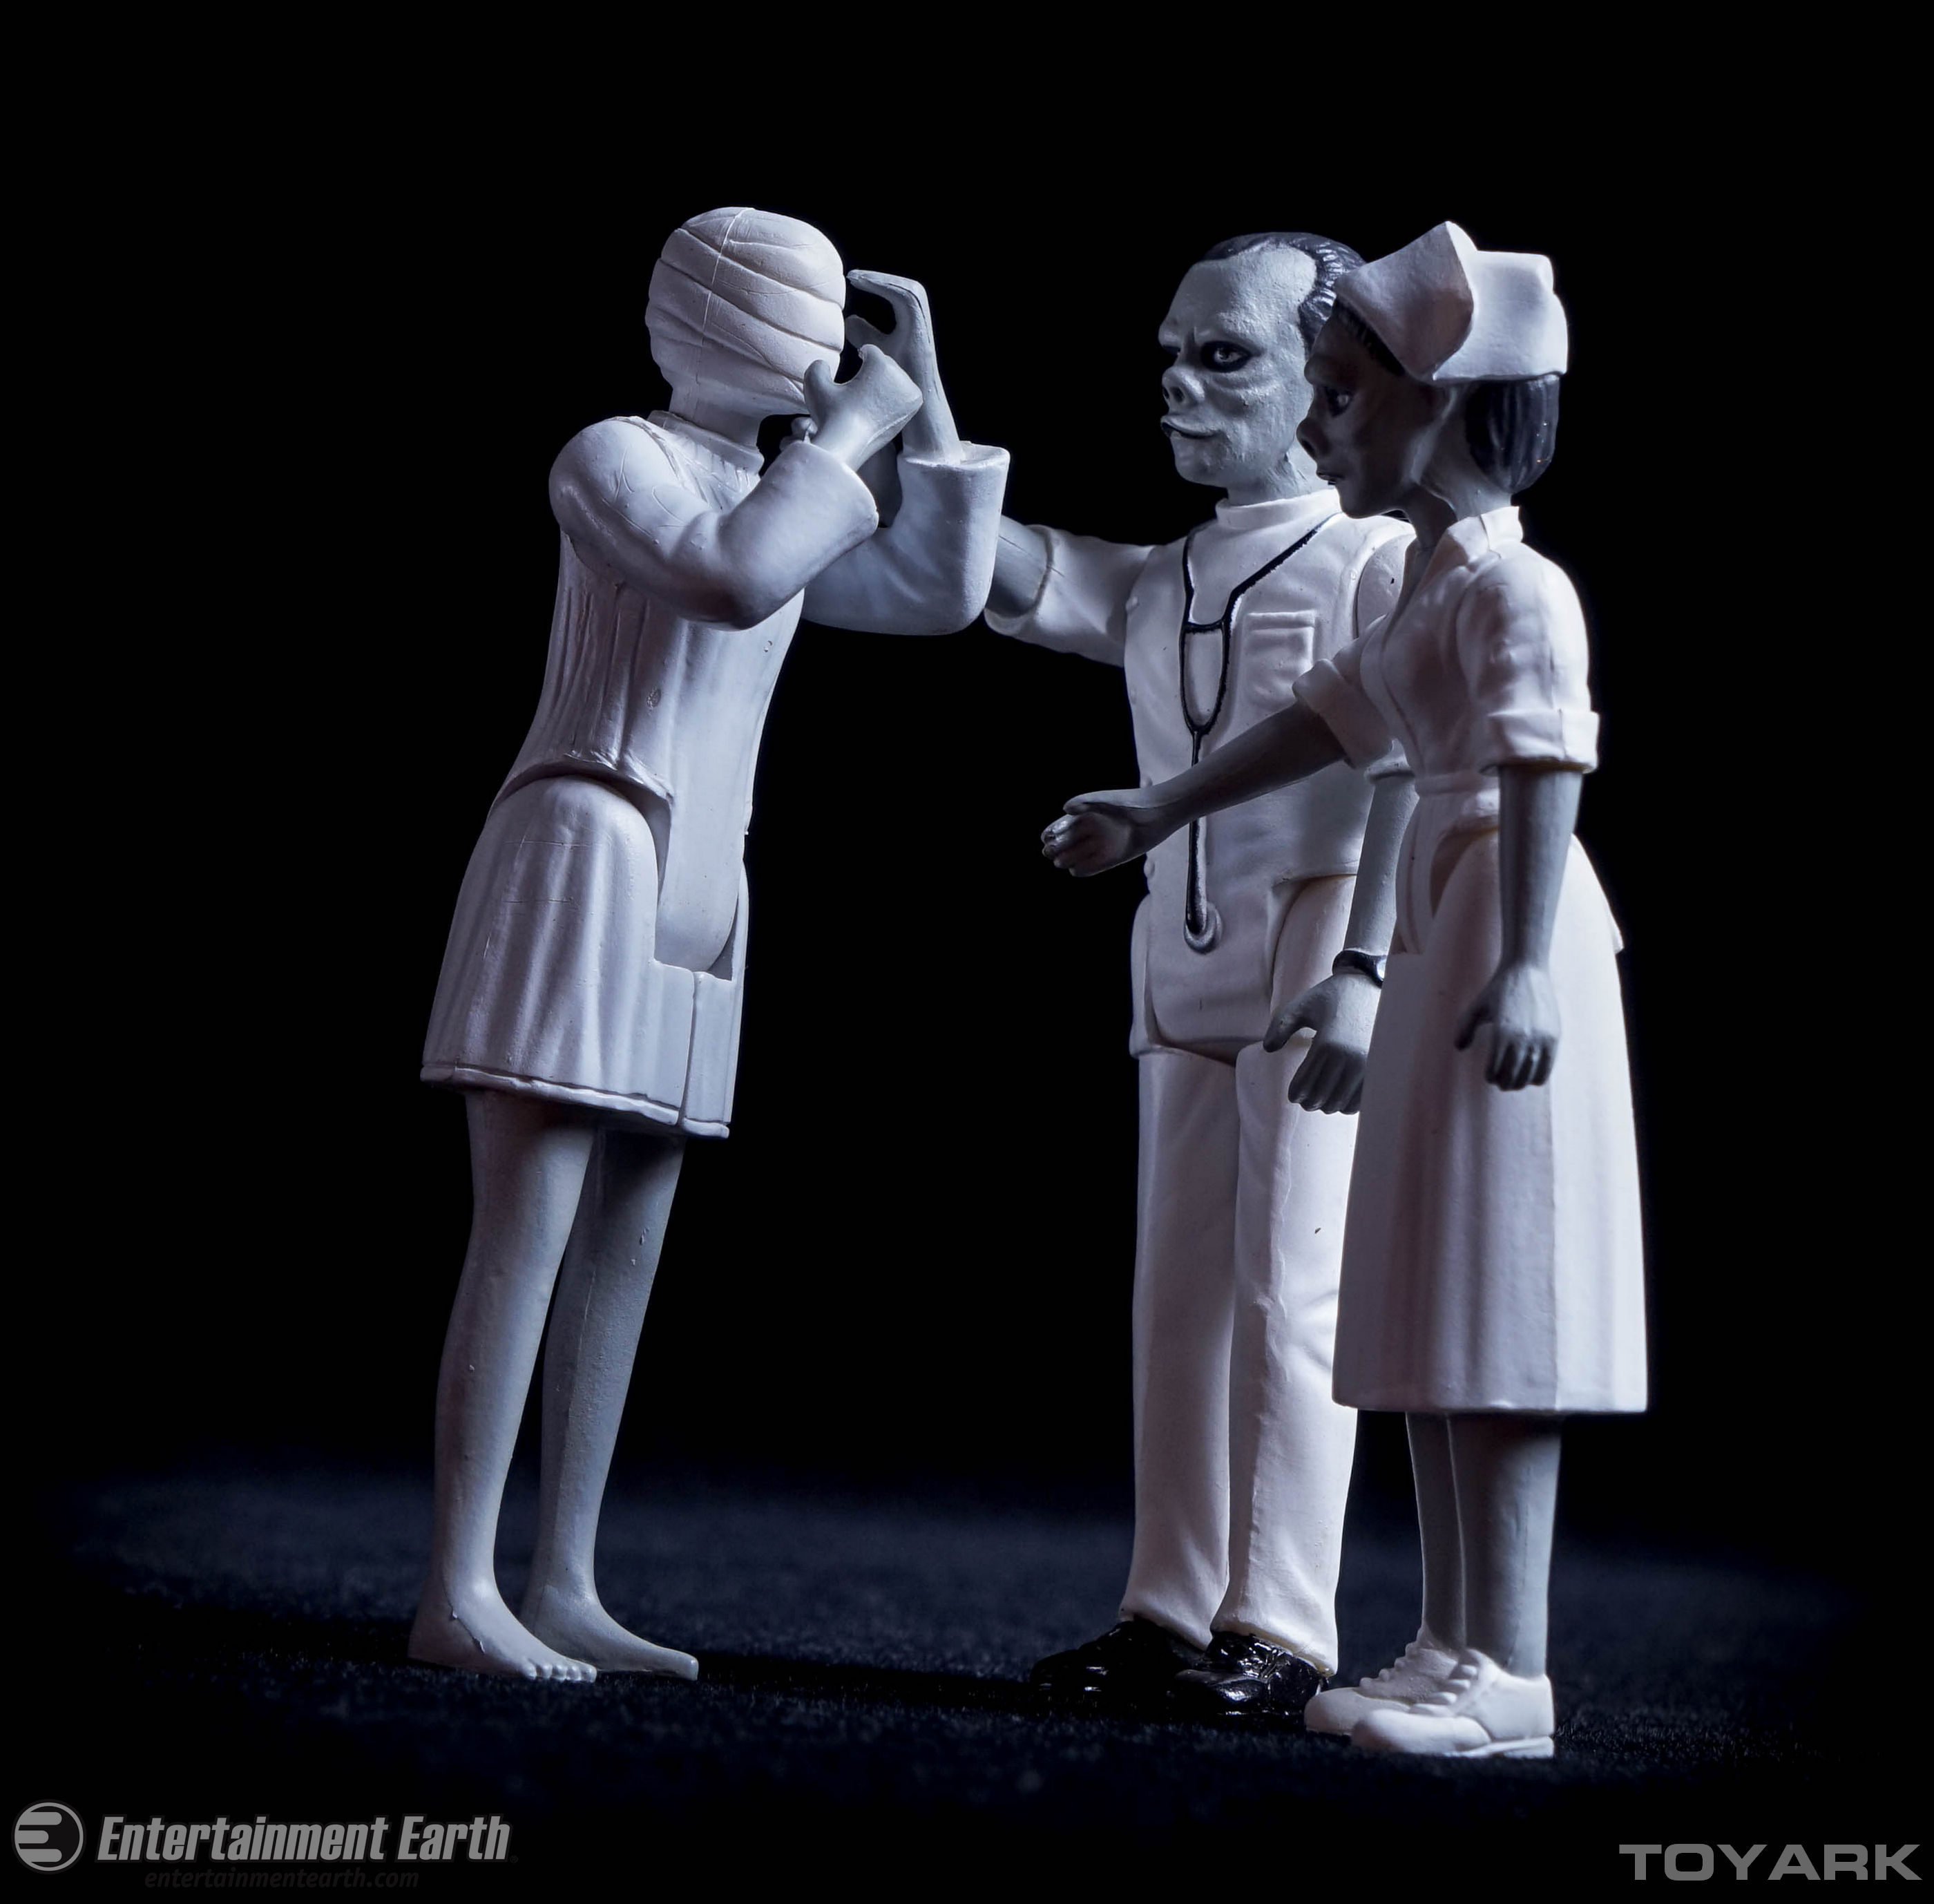 http://news.toyark.com/wp-content/uploads/sites/4/2015/10/Twilight-Zone-Series-2-Figures-055.jpg